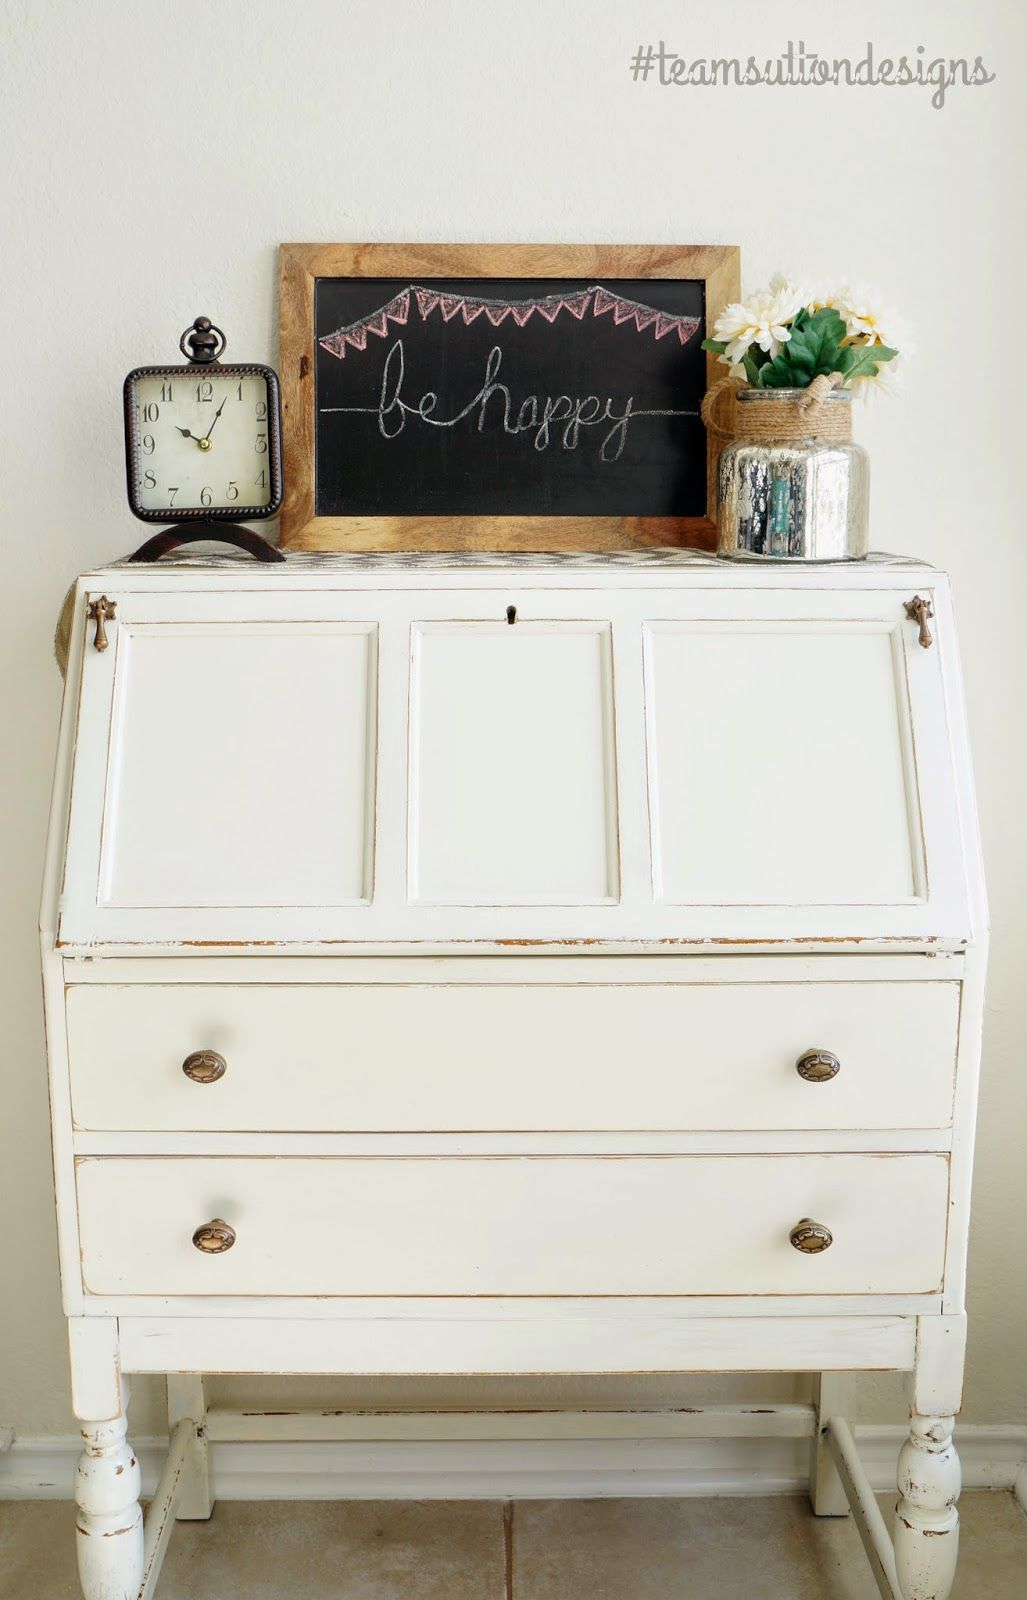 Portfolio Country Chic Painted Furniture Furniture Country Chic Paint